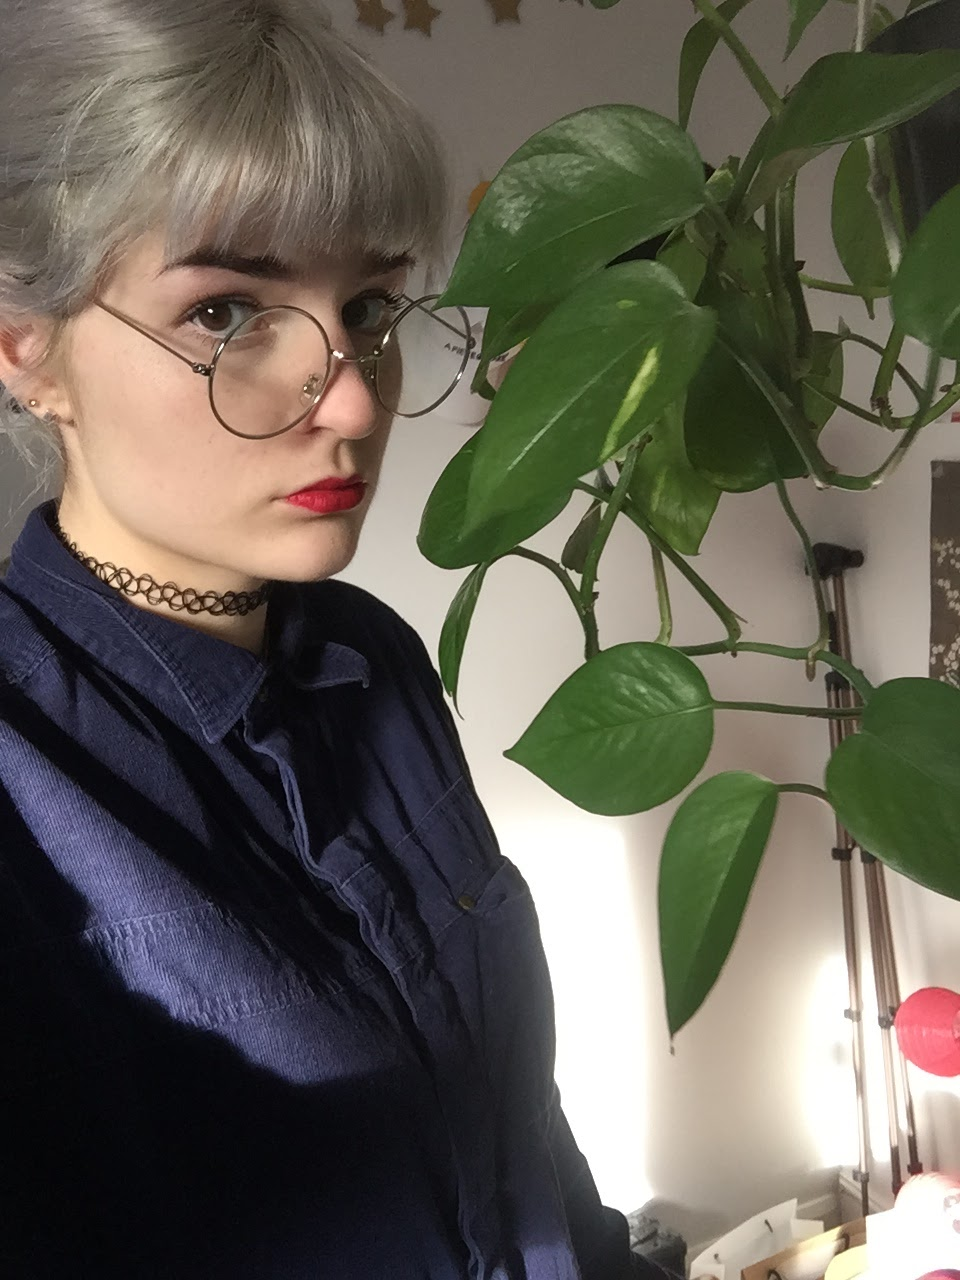 silver haired girl and pothos plant